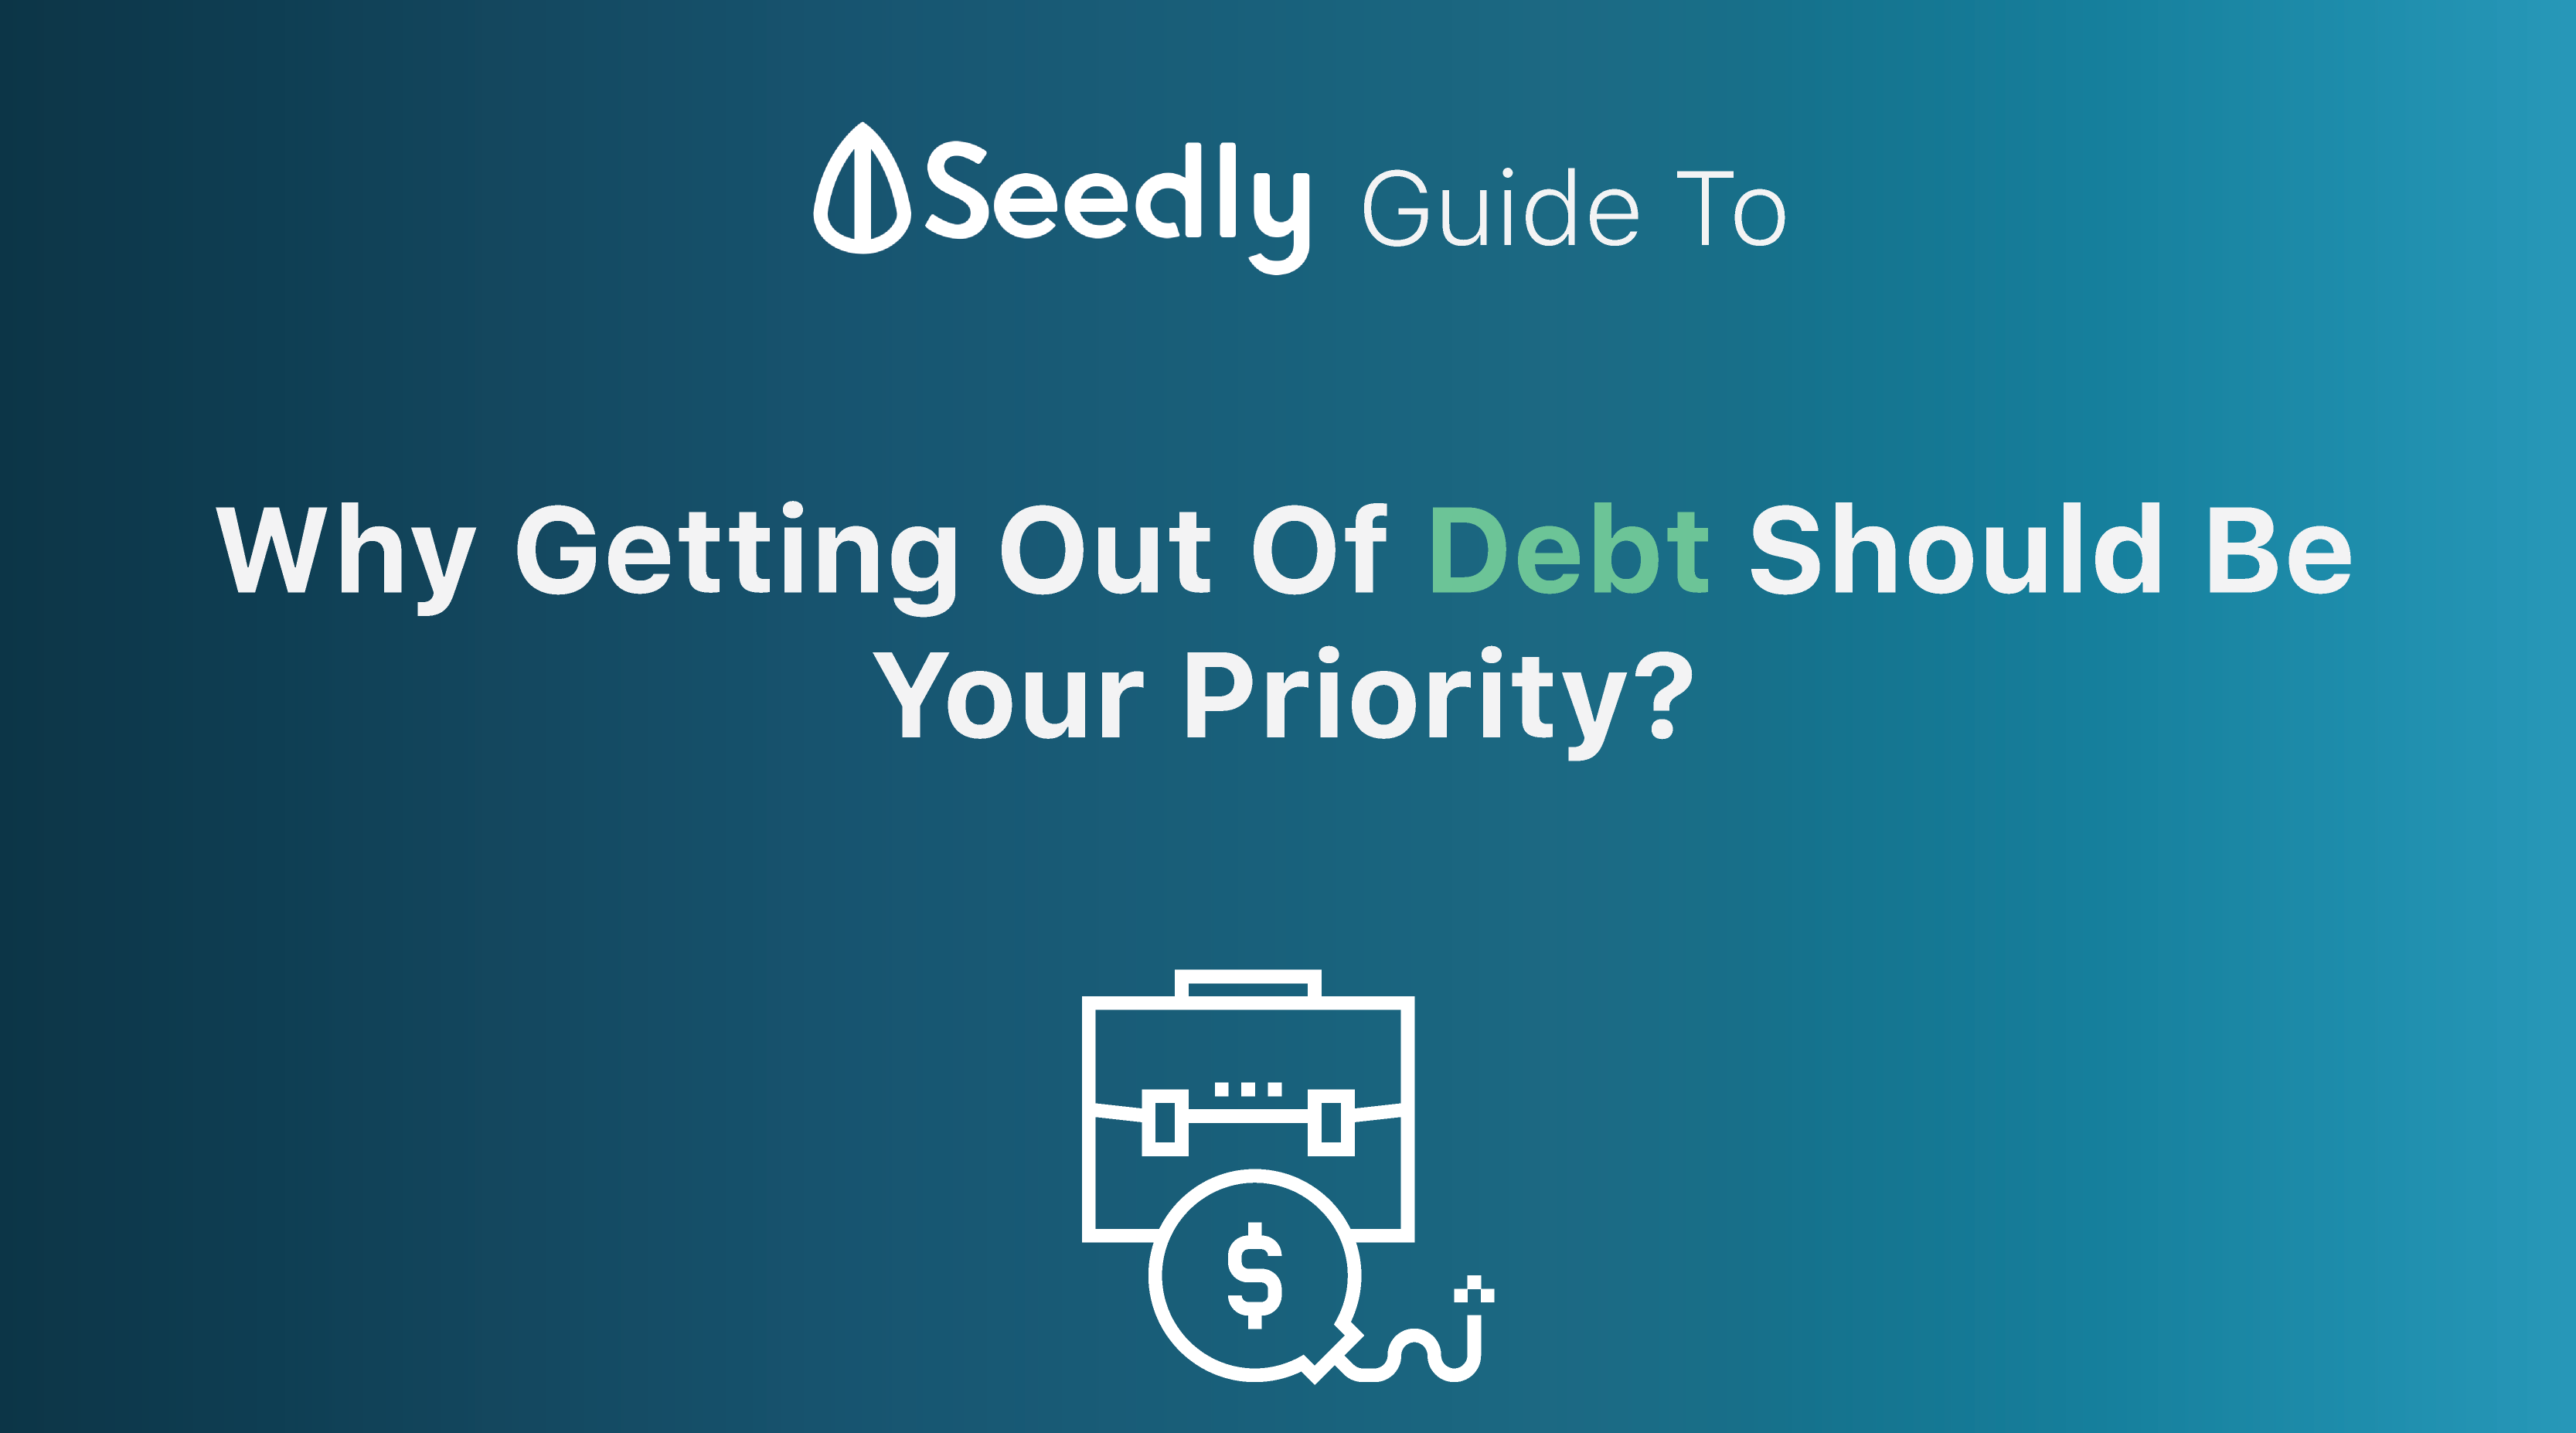 Seedly's Guide: Why Getting Out Of Debt Should Be Your Priority?